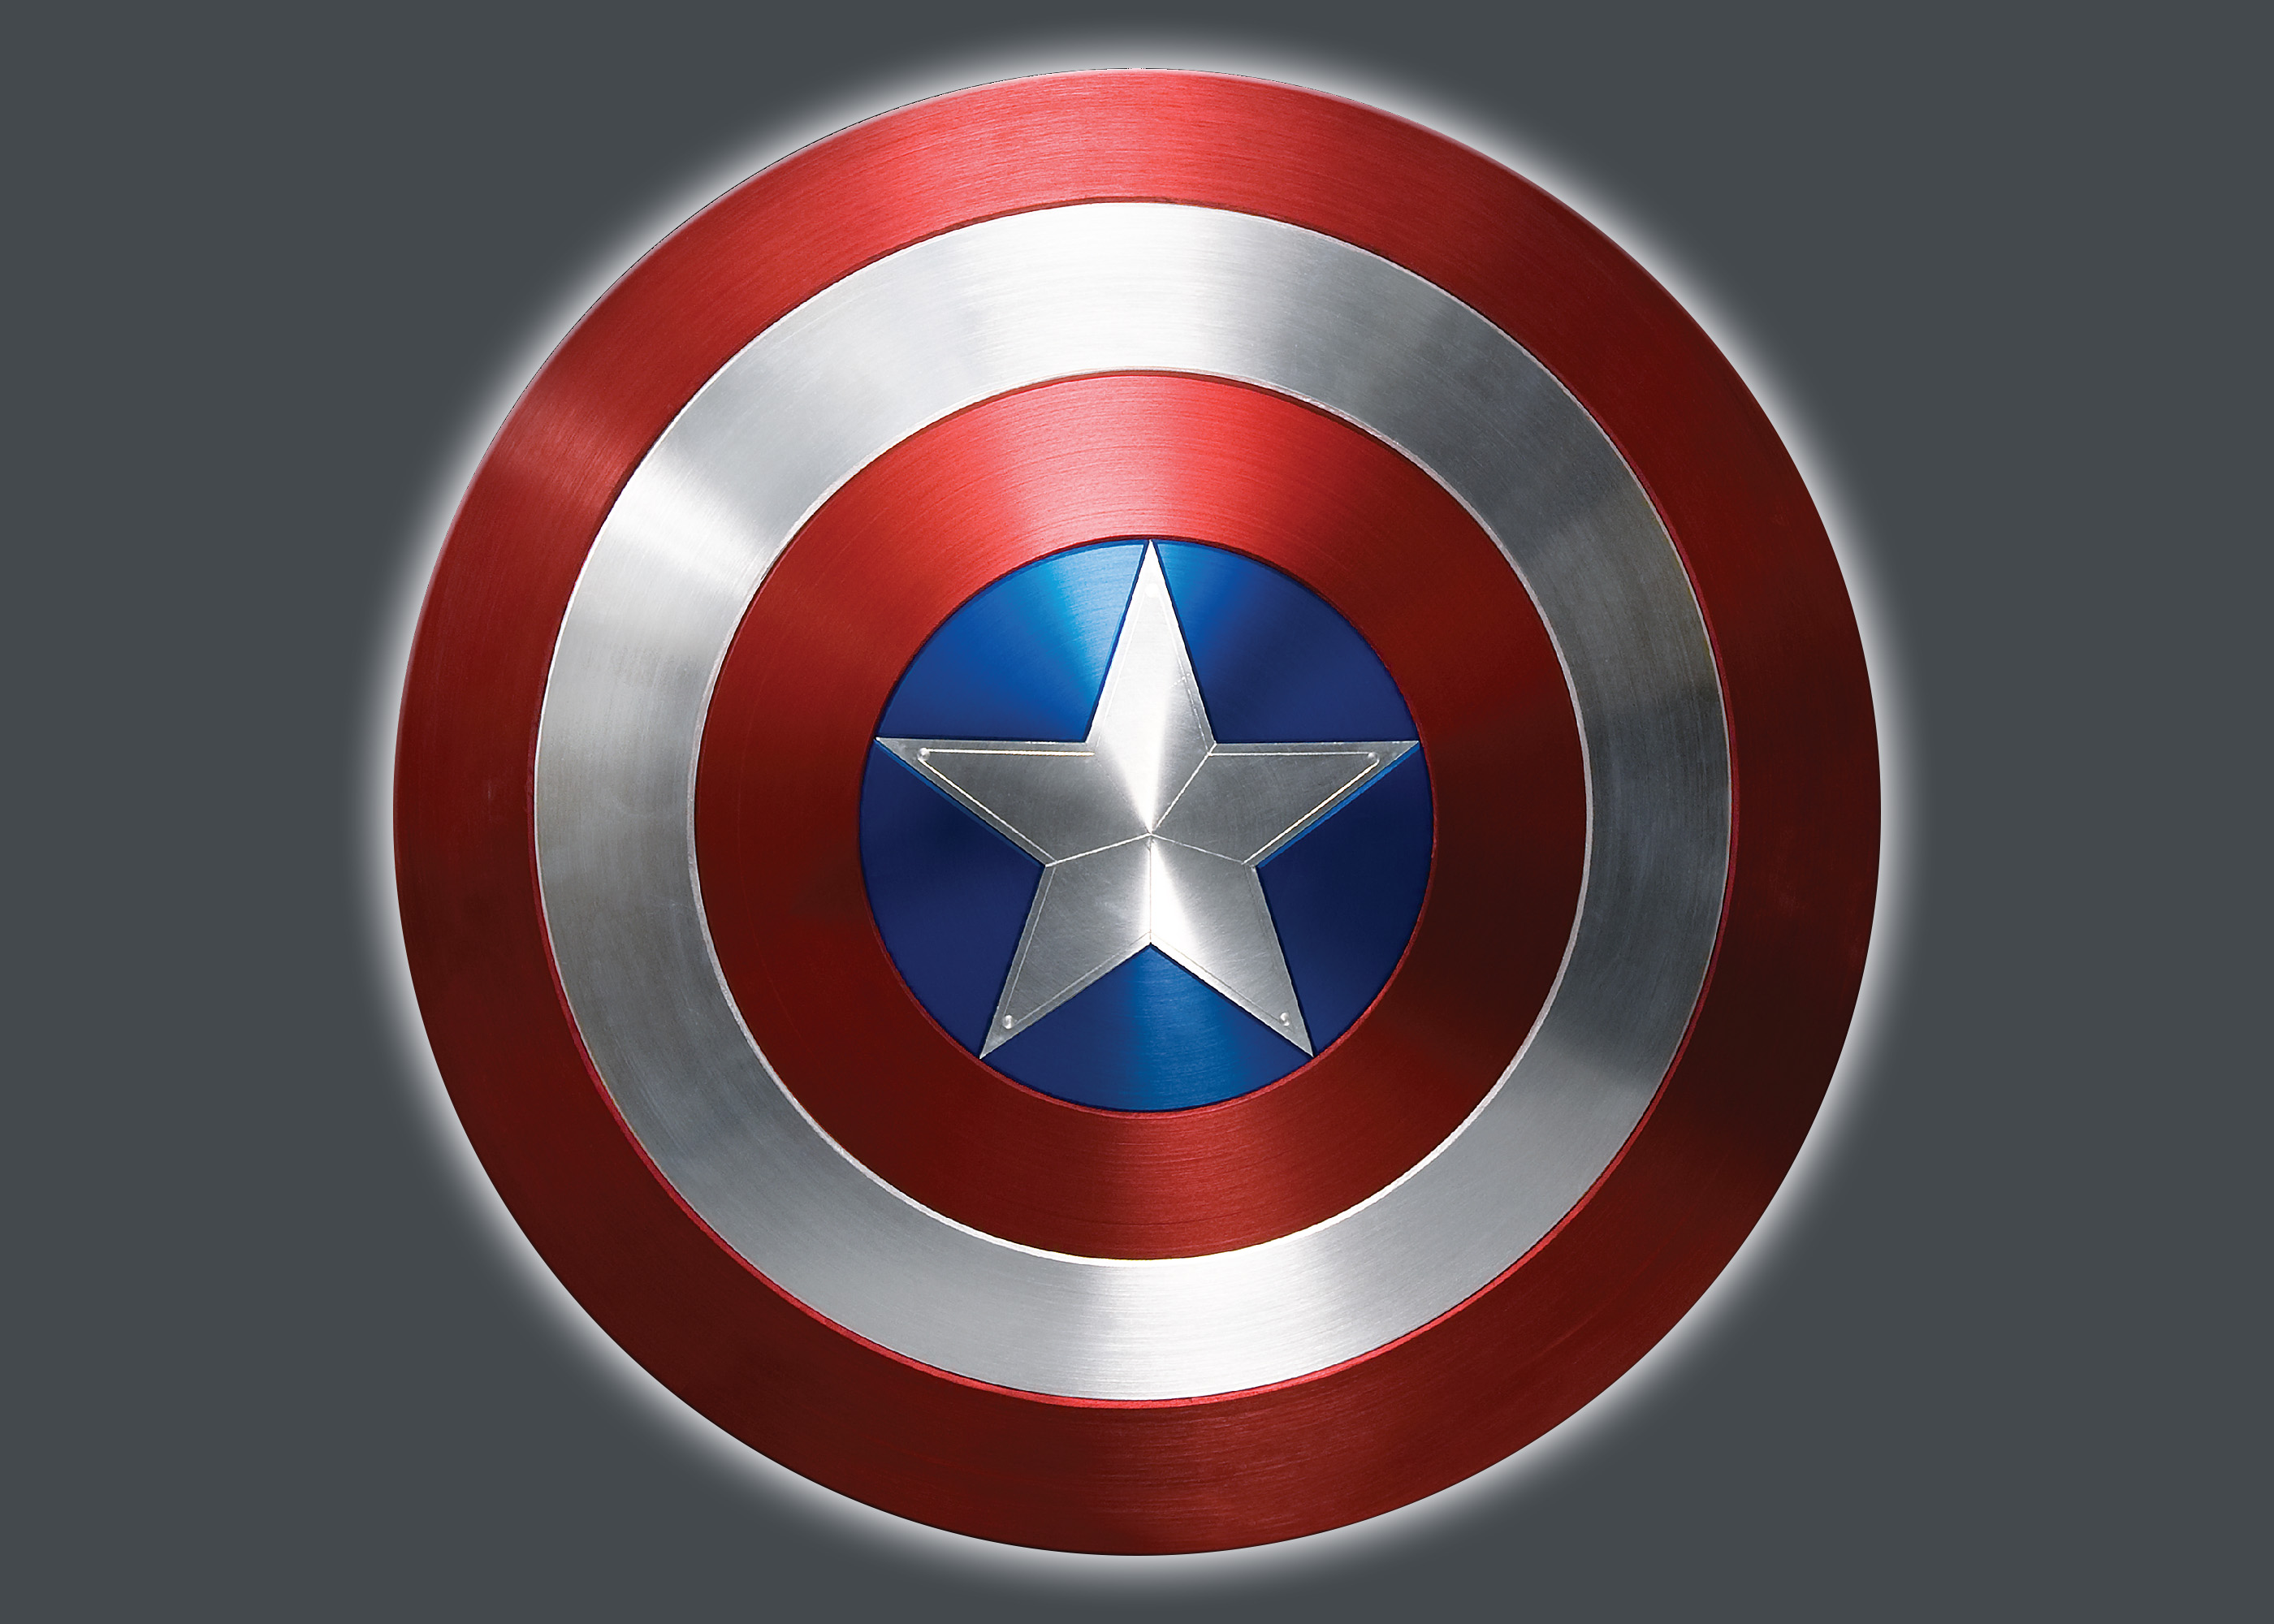 captain america logo captain america symbol meaning history and